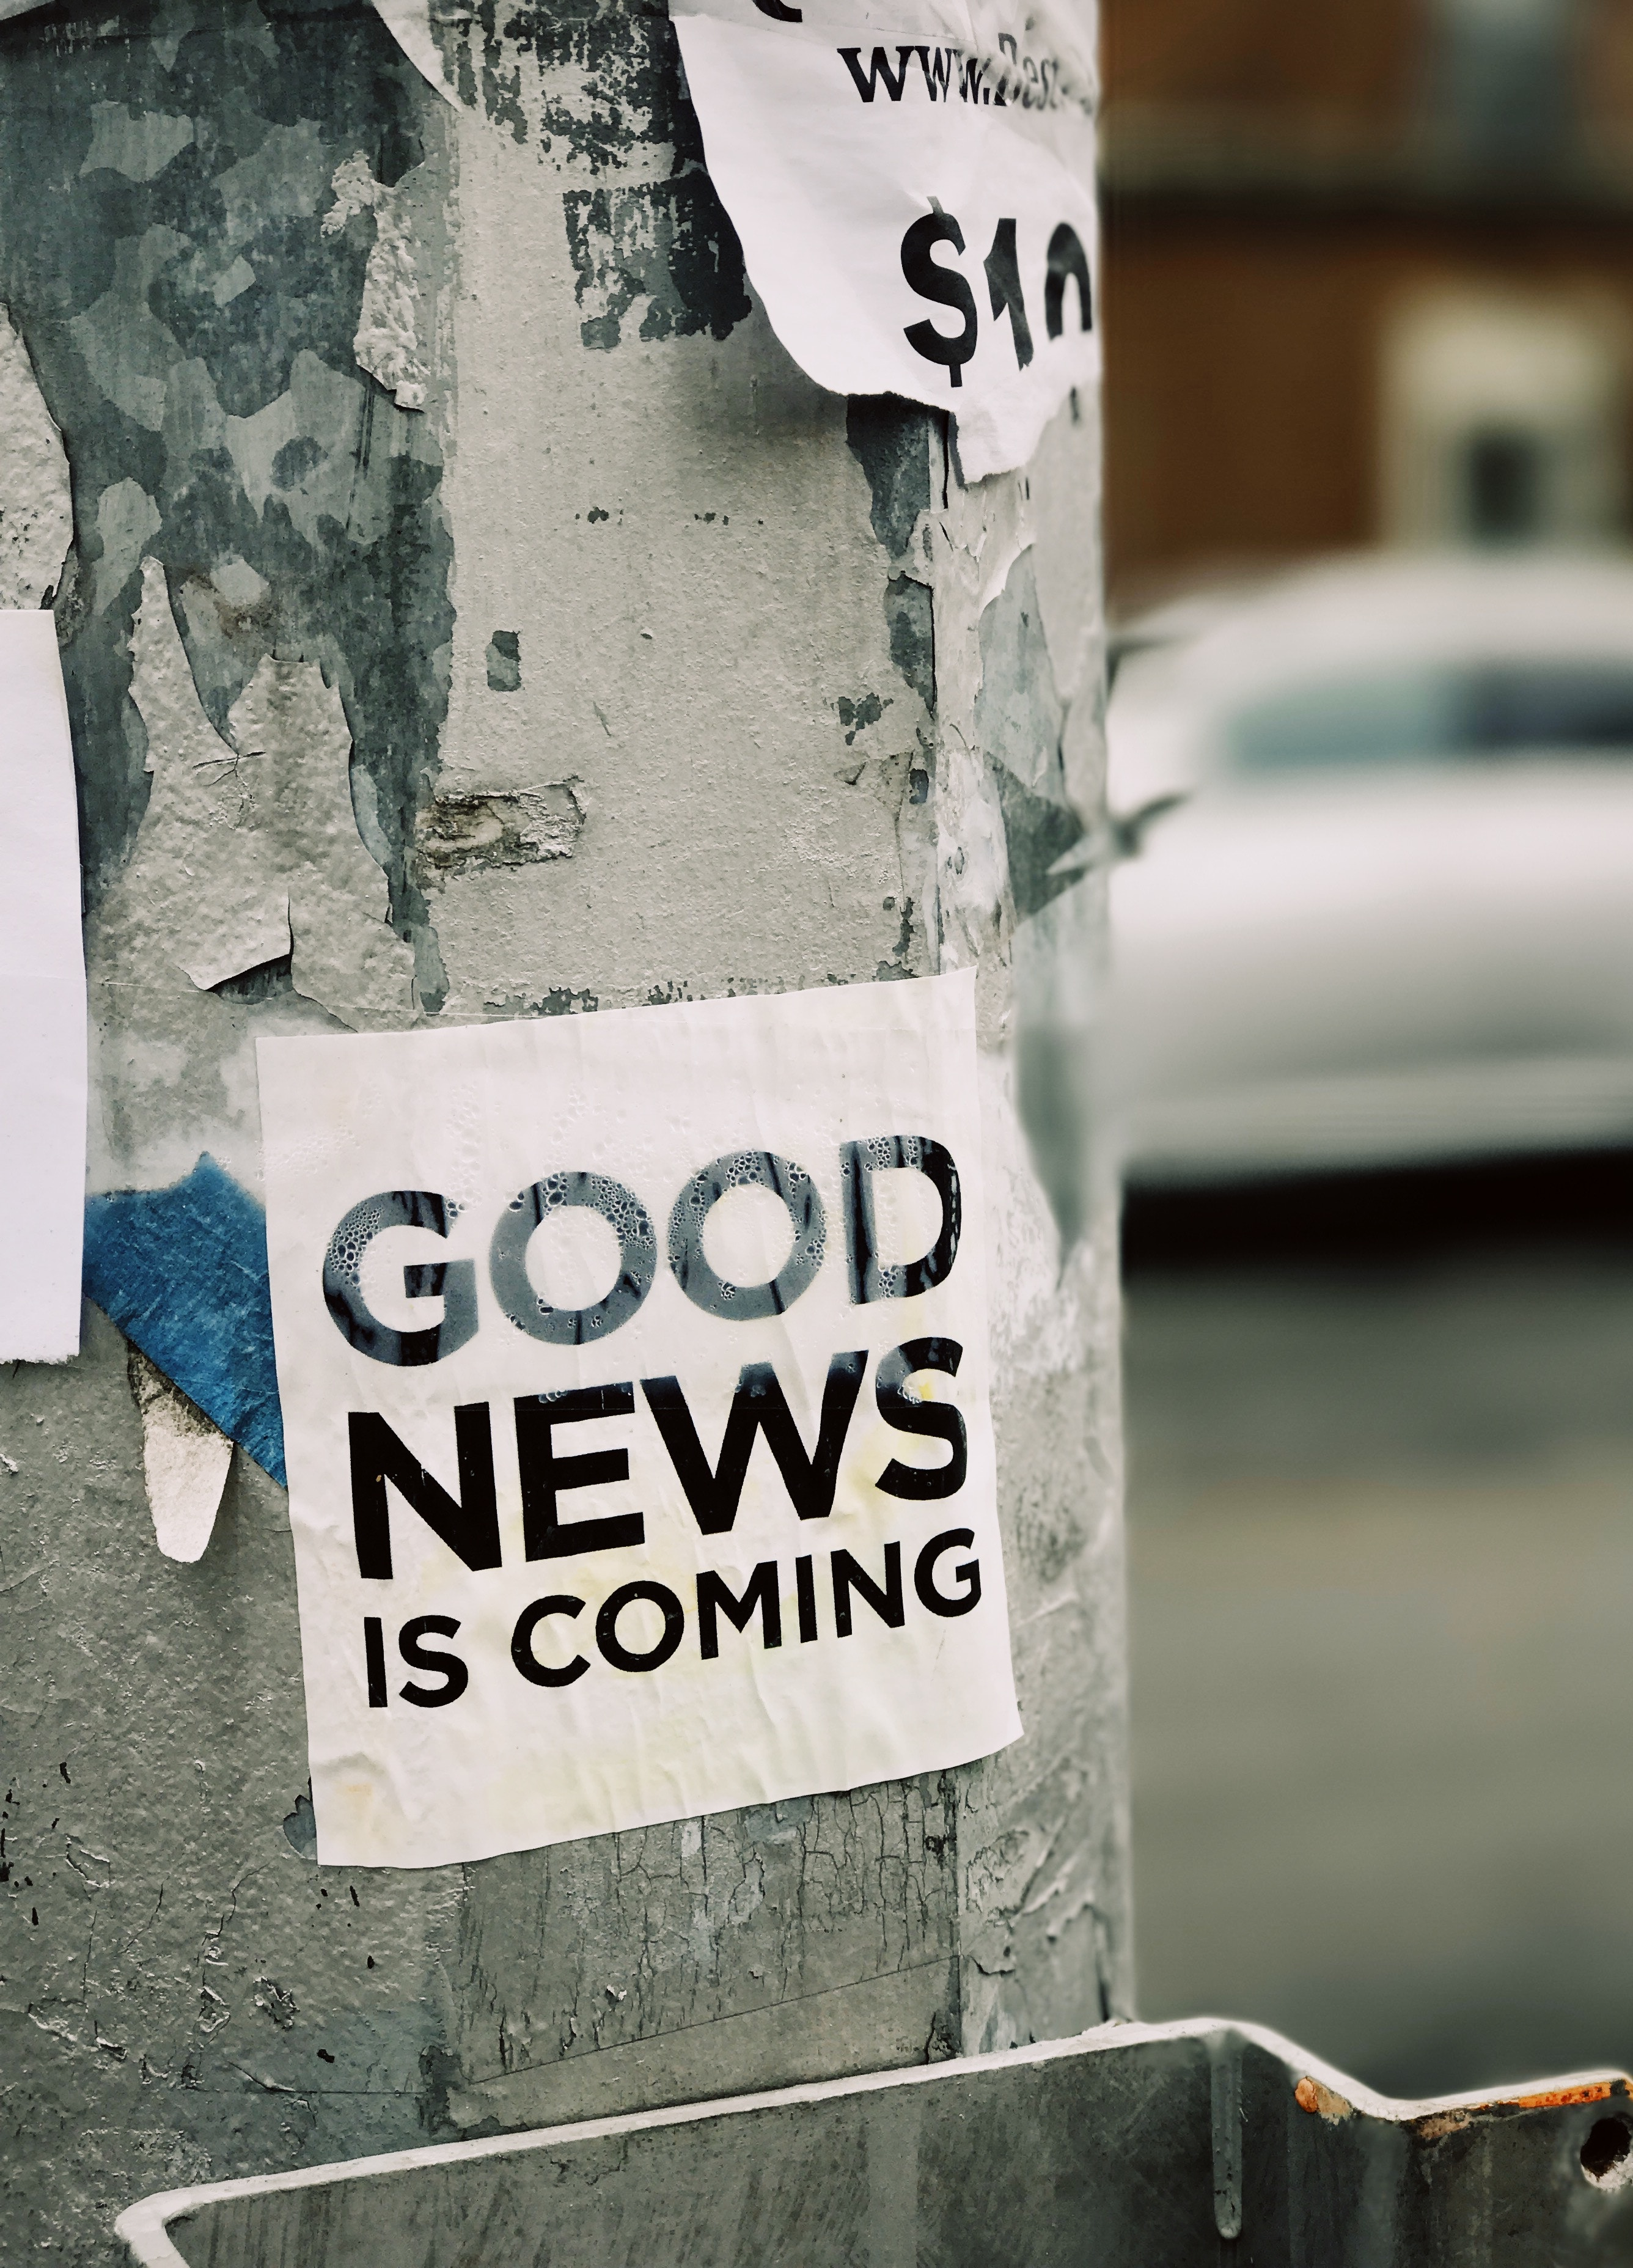 good news is coming - we have hope